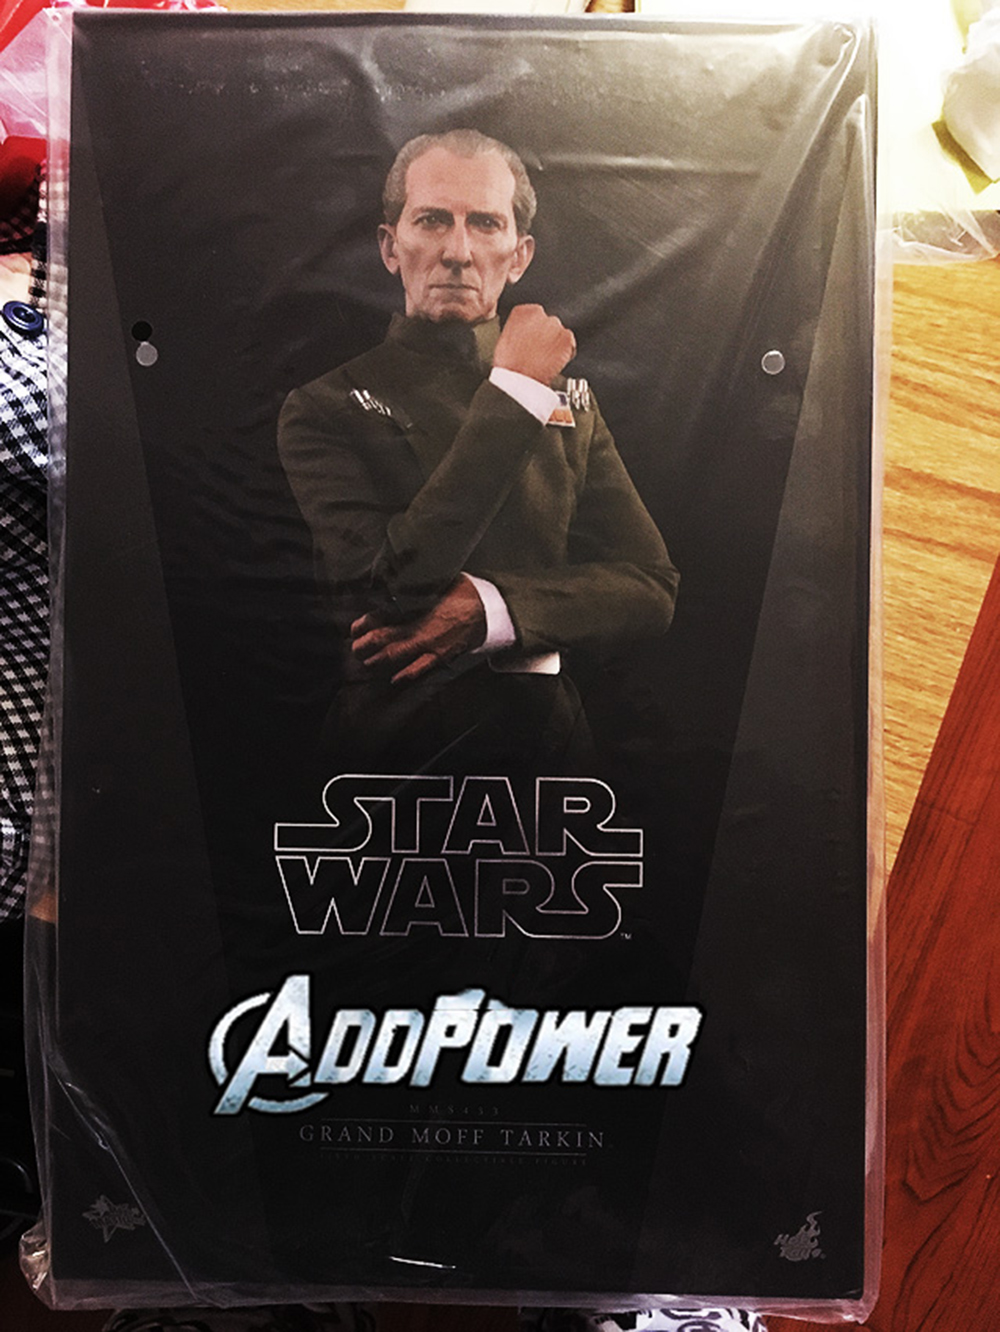 Full set Colletible 1/6 Scale Star Wars: Episode IV - A New Hope Grand Moff Tarkin Peter Cushing Figure Model Toys 5